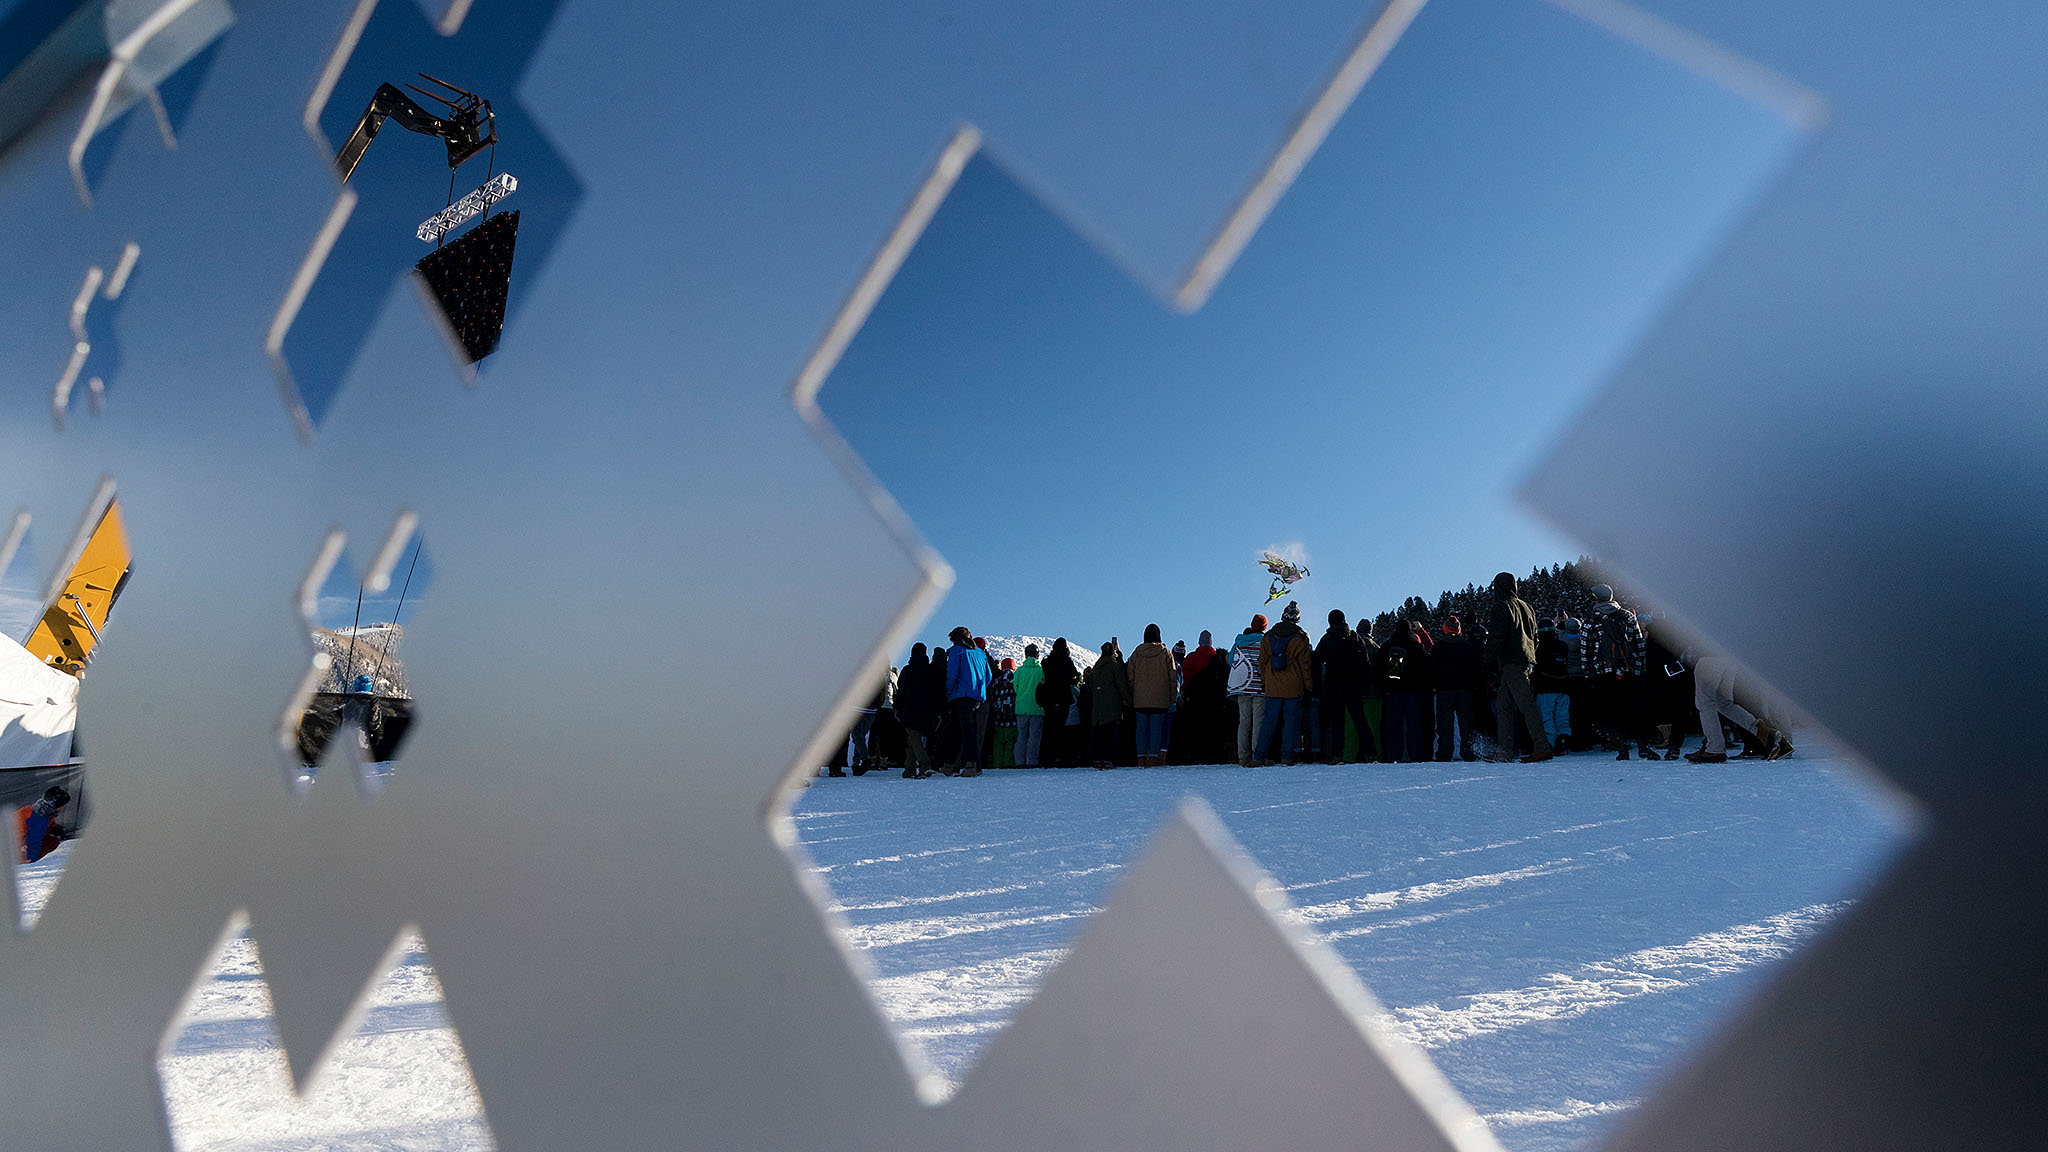 Saturday at X Games Aspen